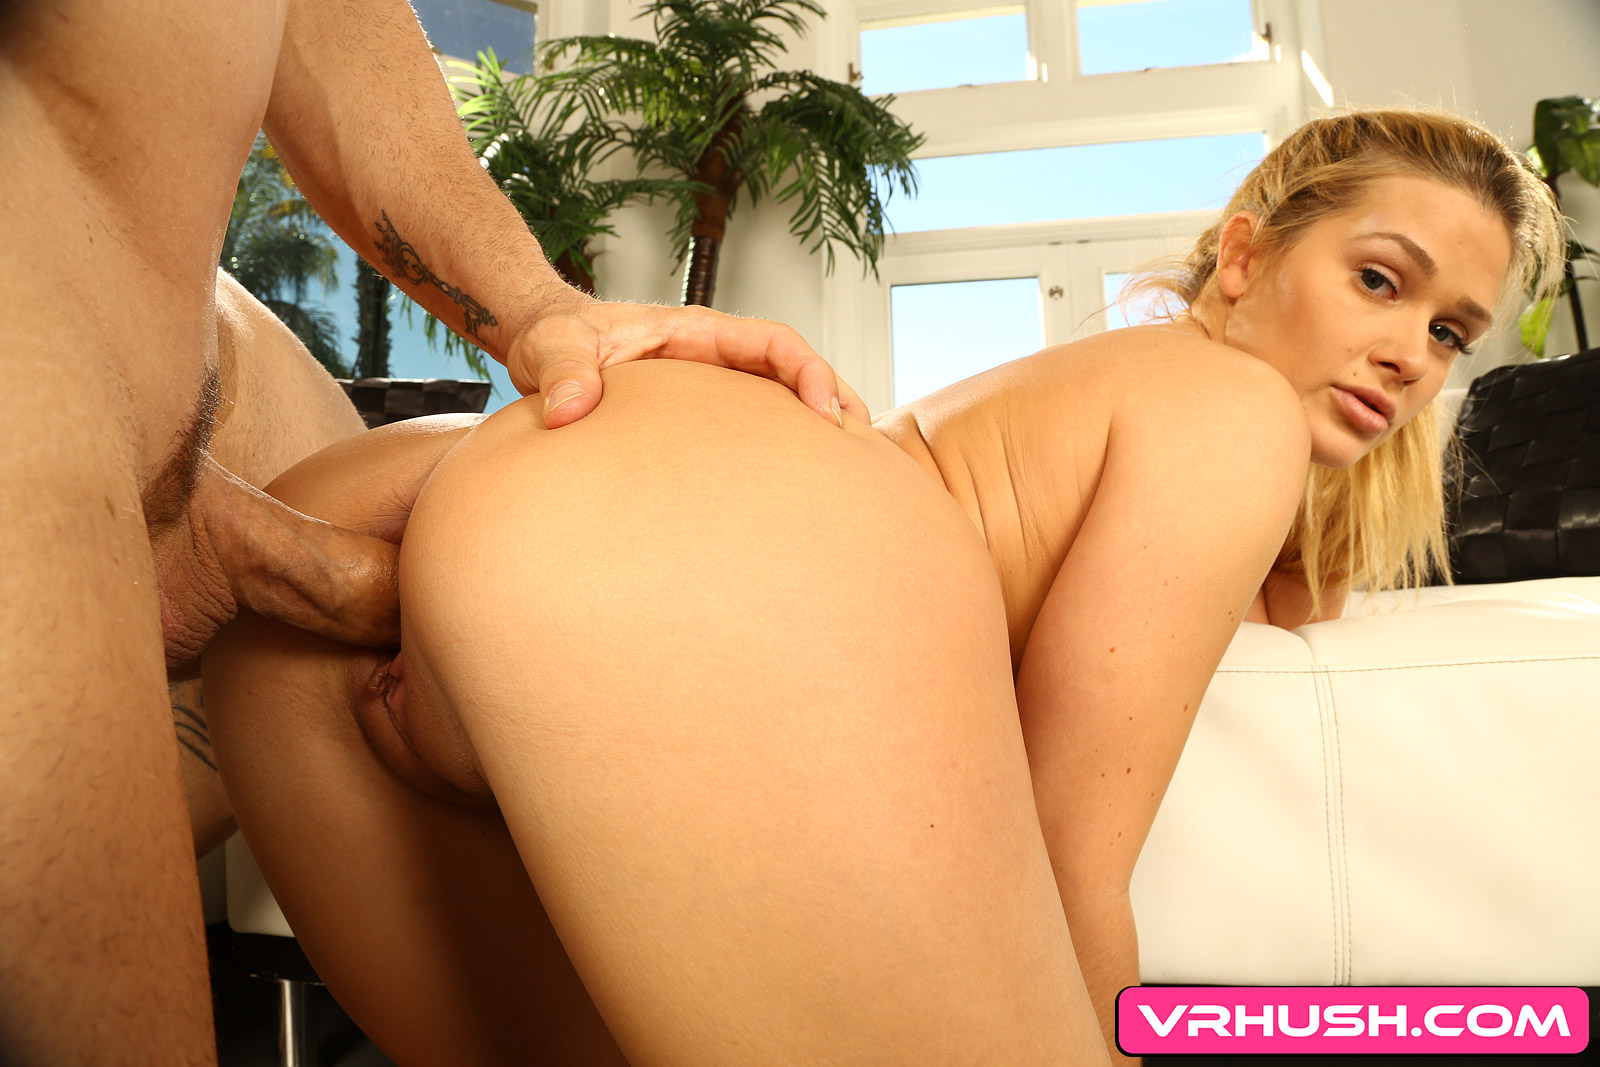 Help Stretch Out Abby Cross (Voyeur) - Blonde Yoga Porn Abby Cross